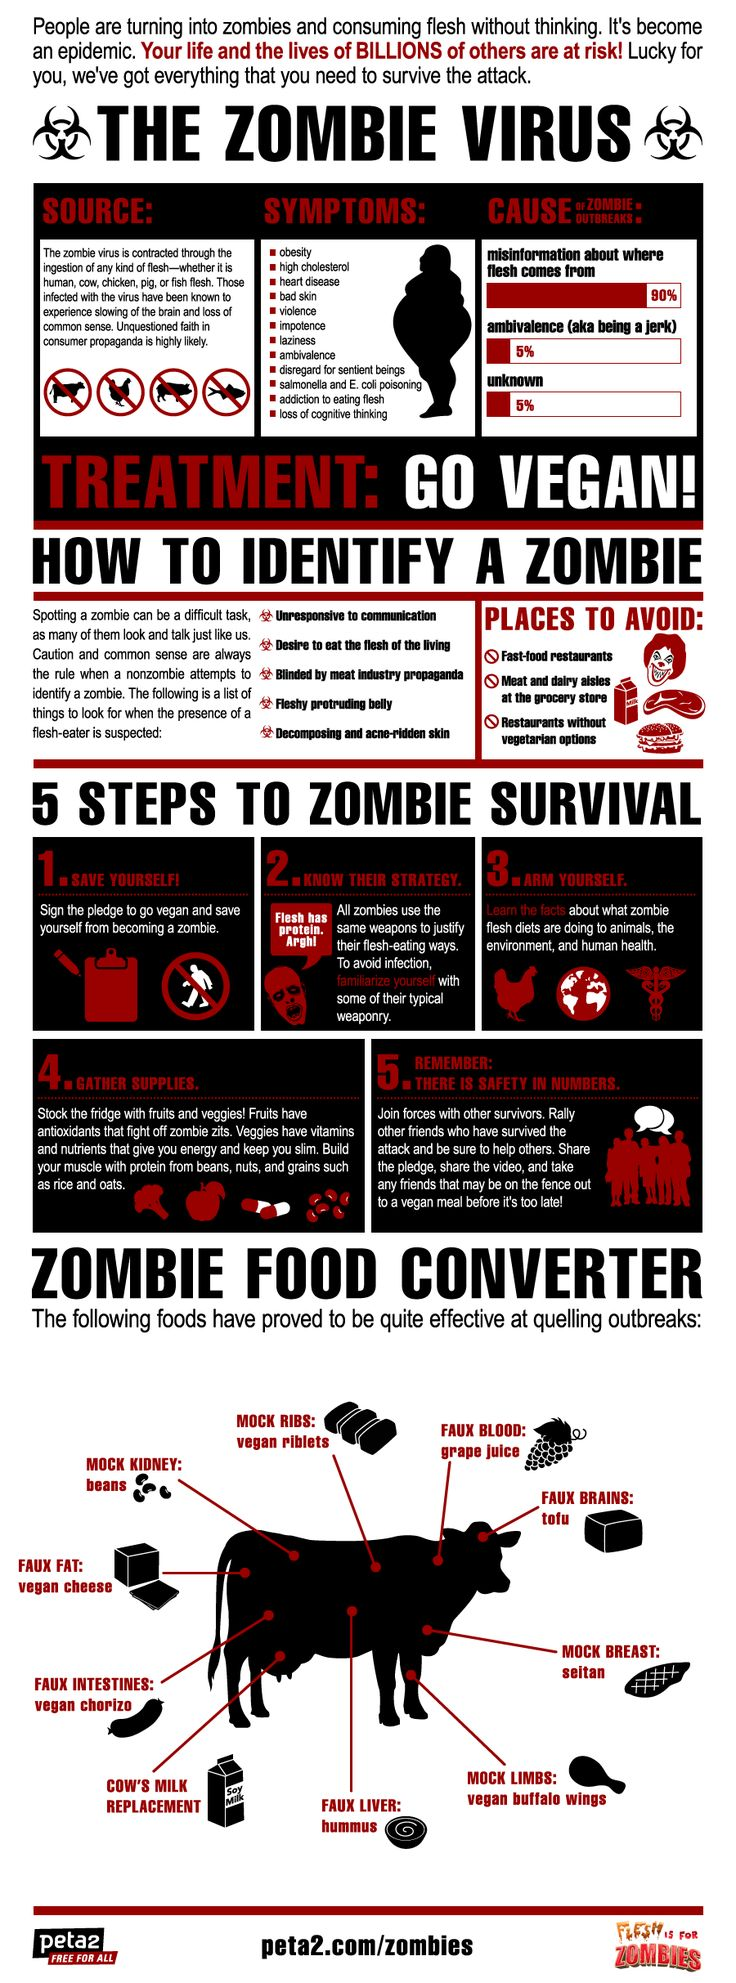 expository the zombie survival guide Gypsies of spain the zombie survival guide recorded attacks the age of charles i the zohar bereshith genesis an expository translation from hebrew secret.